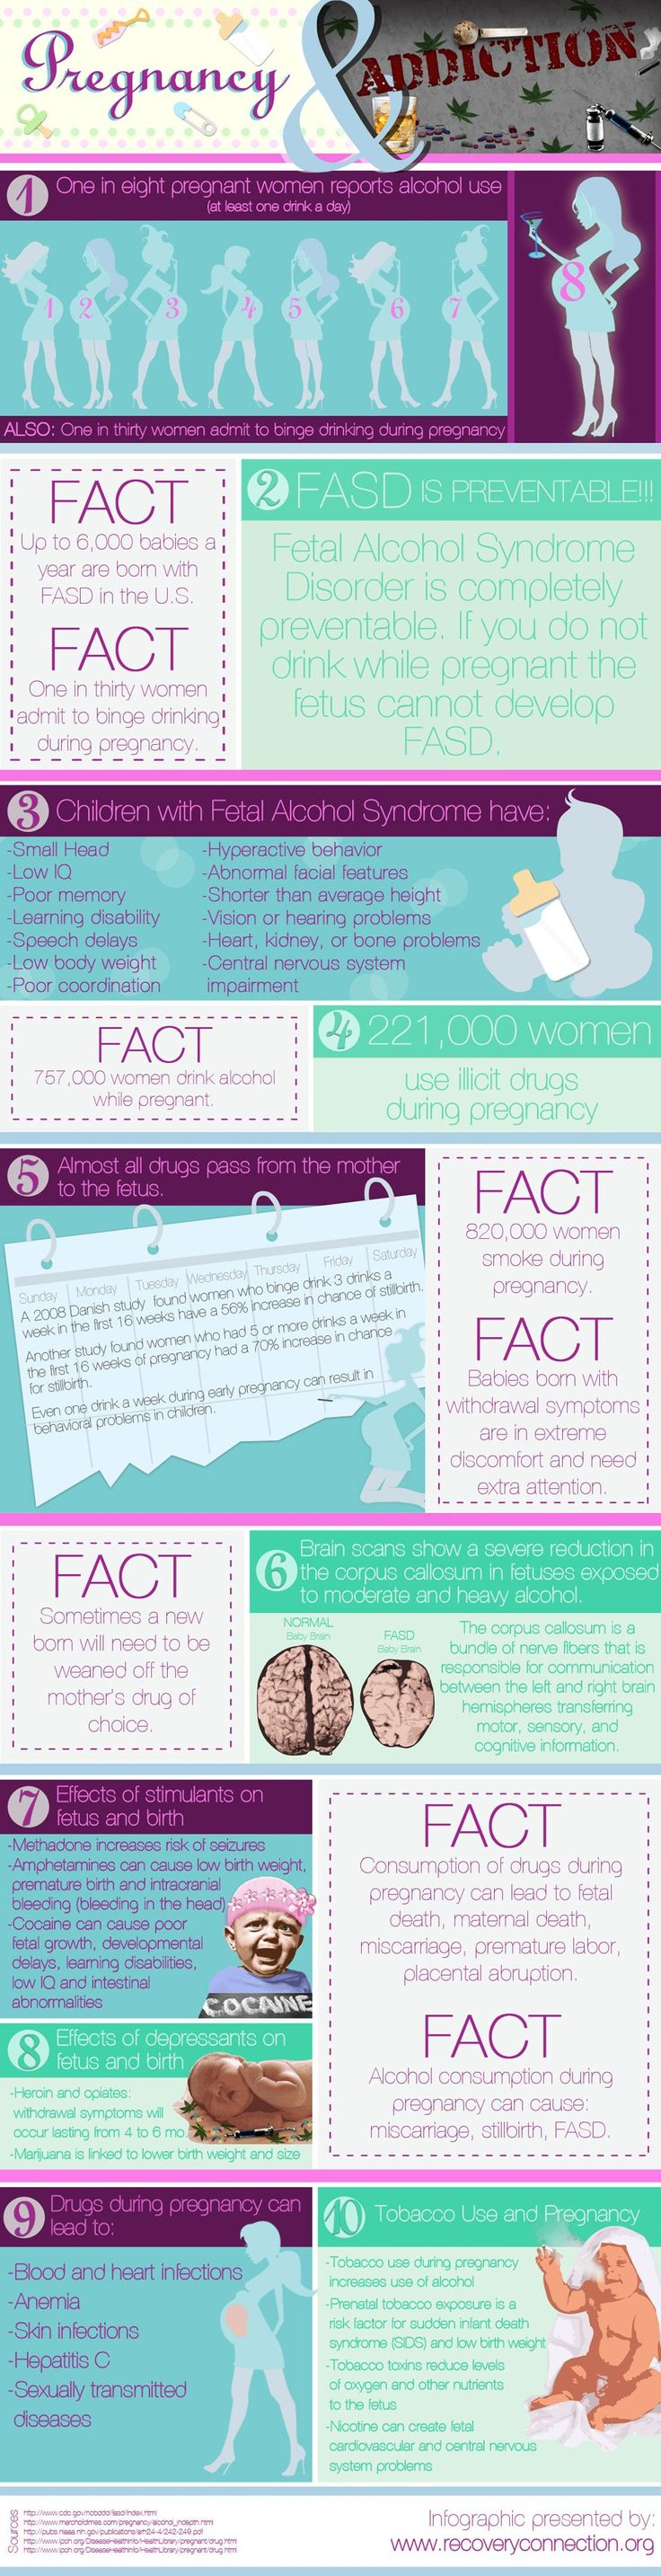 Facts about Pregnancy and Alcohol